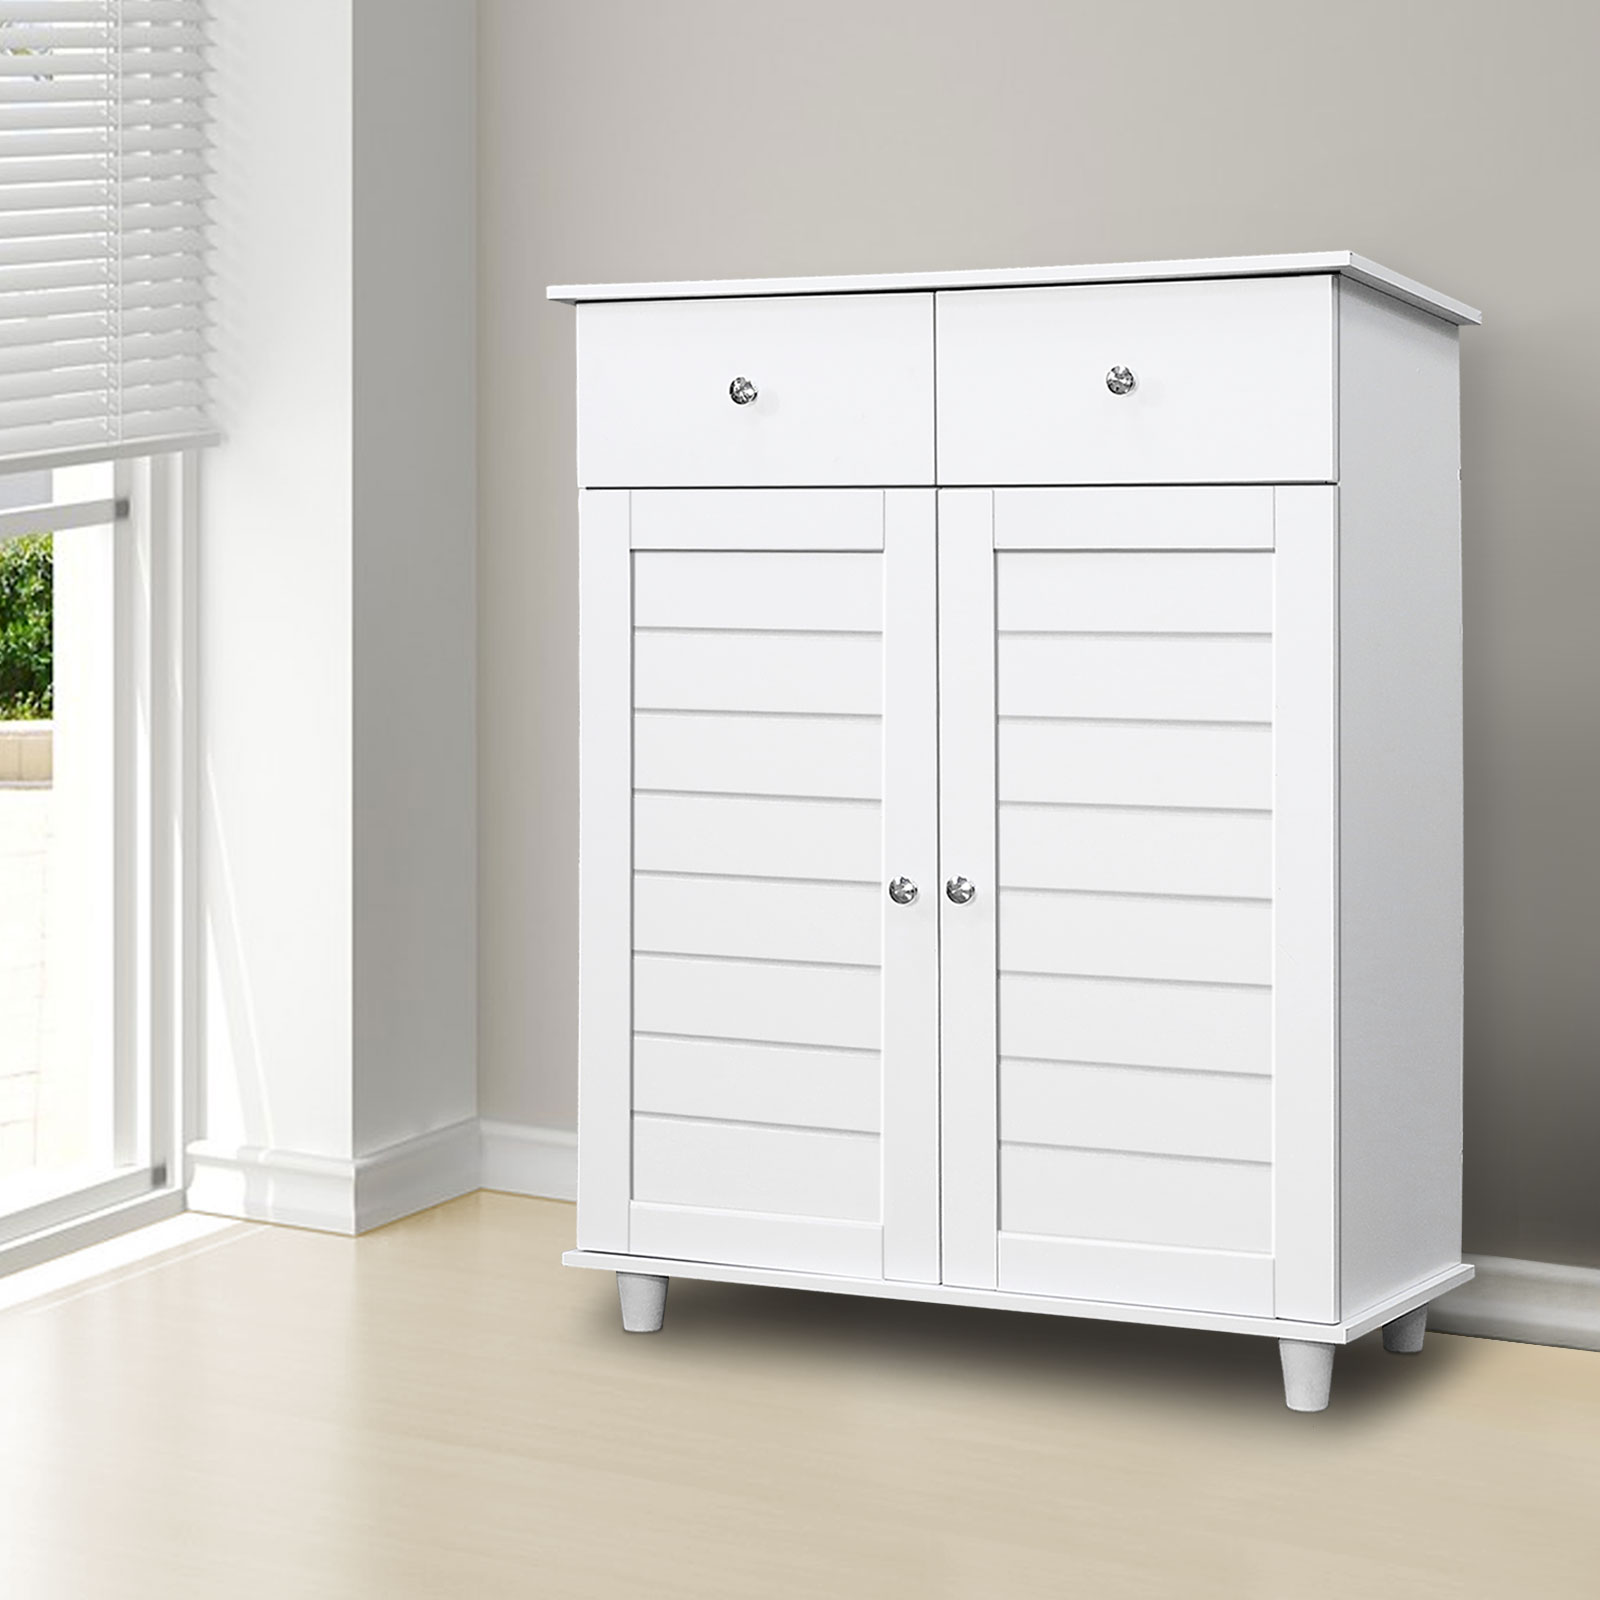 White Wooden Shoe Storage Cabinet 2 Doors 2 Drawers ...